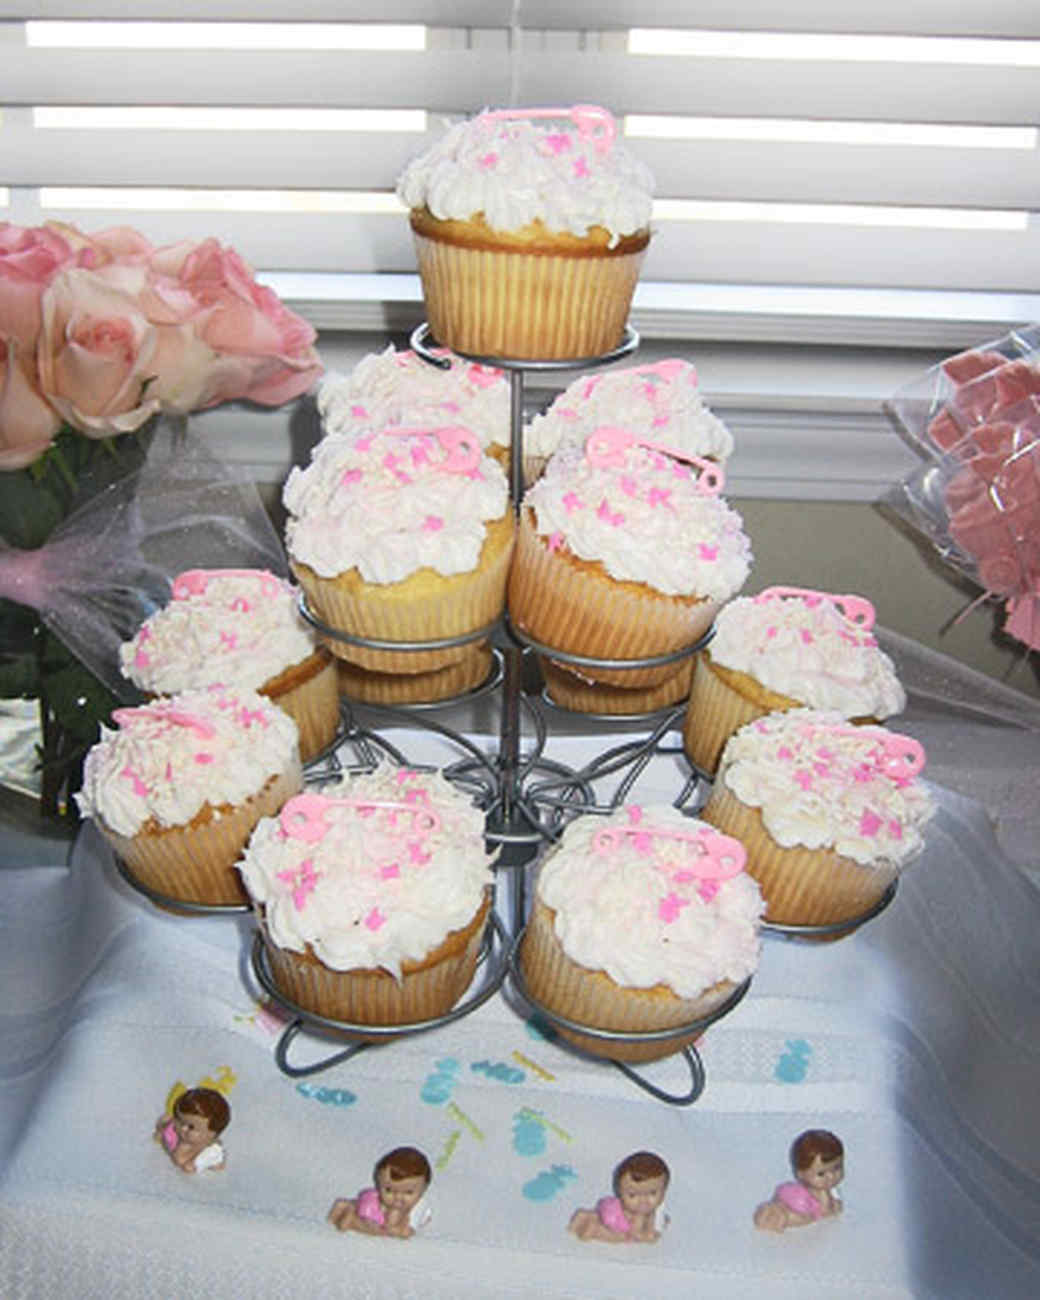 Geliefde Your Best Baby Shower Cupcakes | Martha Stewart @DV62